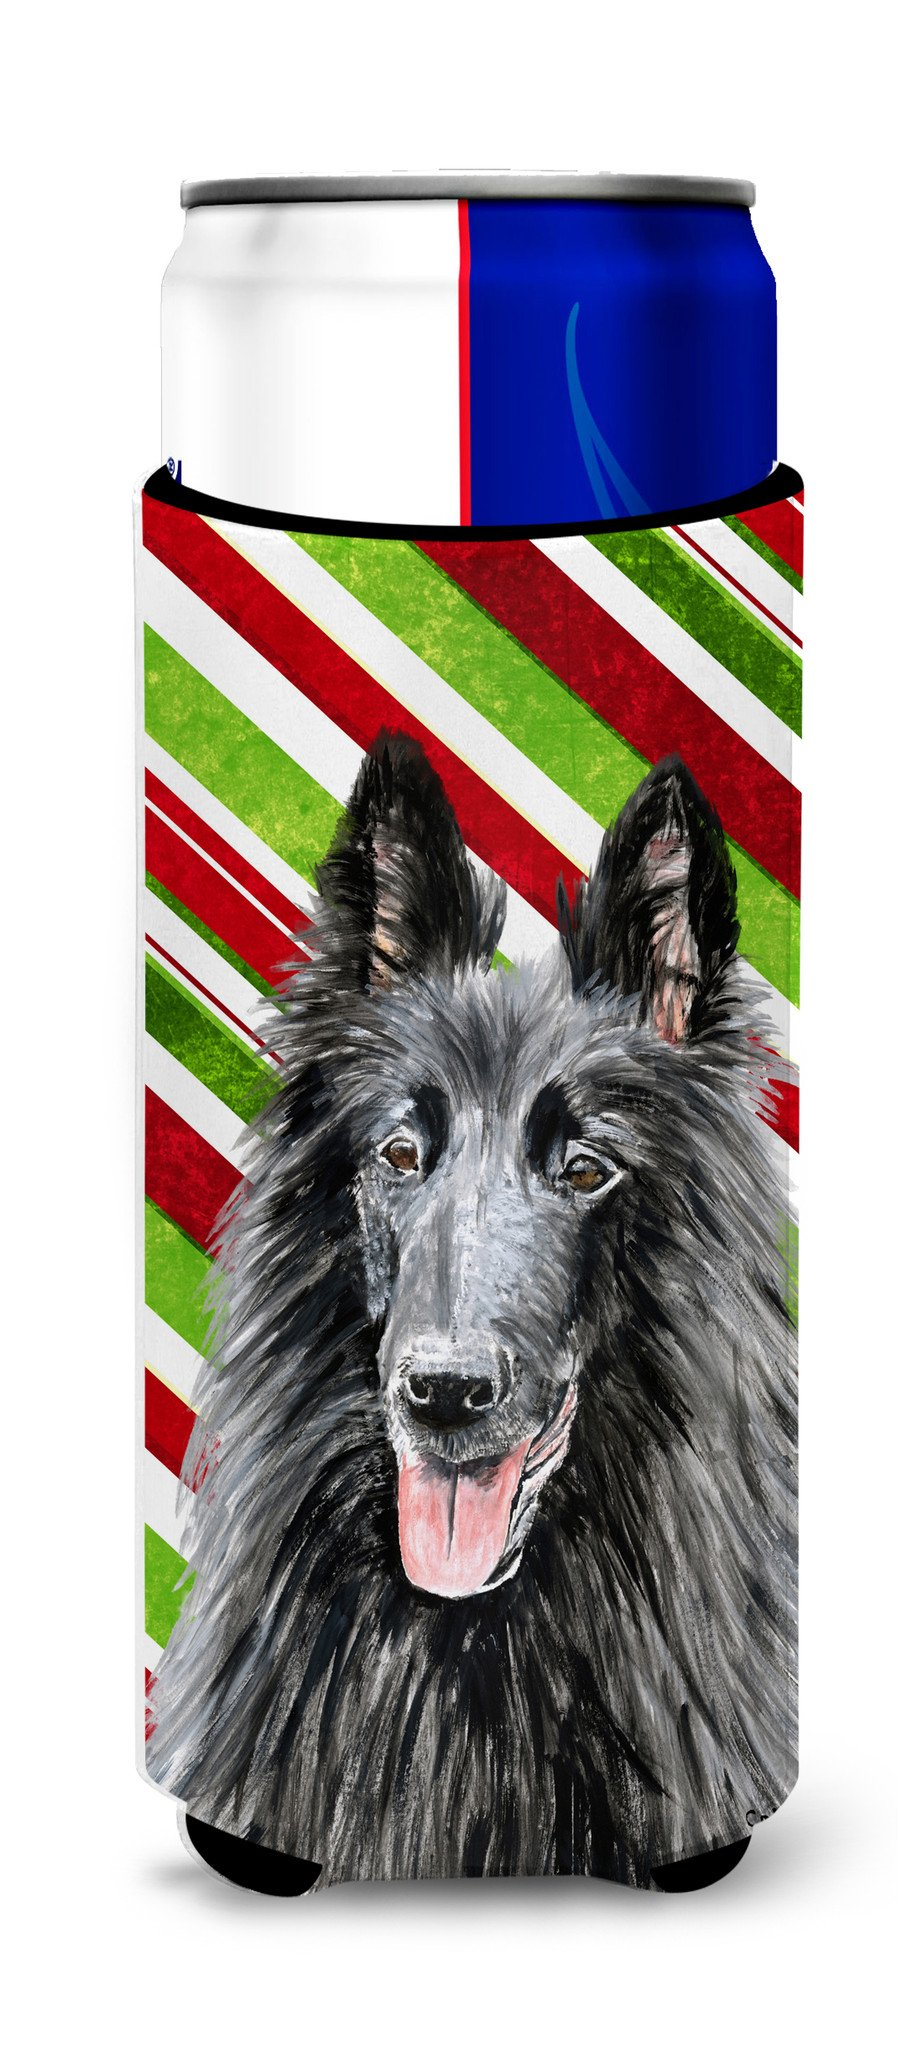 Belgian Sheepdog Candy Cane Holiday Christmas Ultra Beverage Insulators for slim cans SC9358MUK by Caroline's Treasures